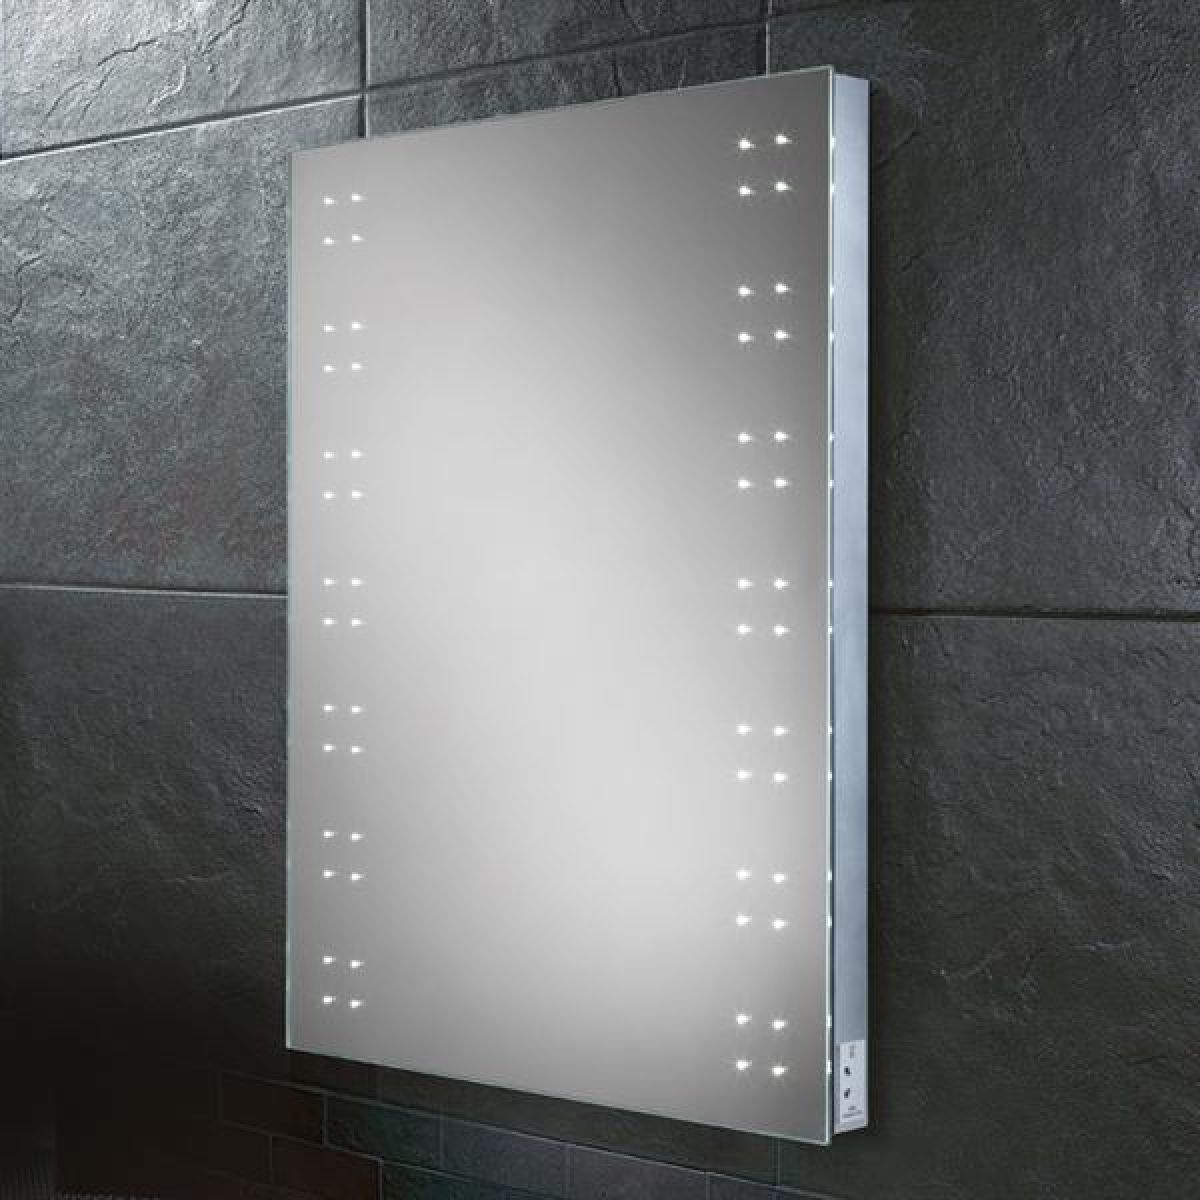 HiB Ariel Illuminated Bathroom Mirror